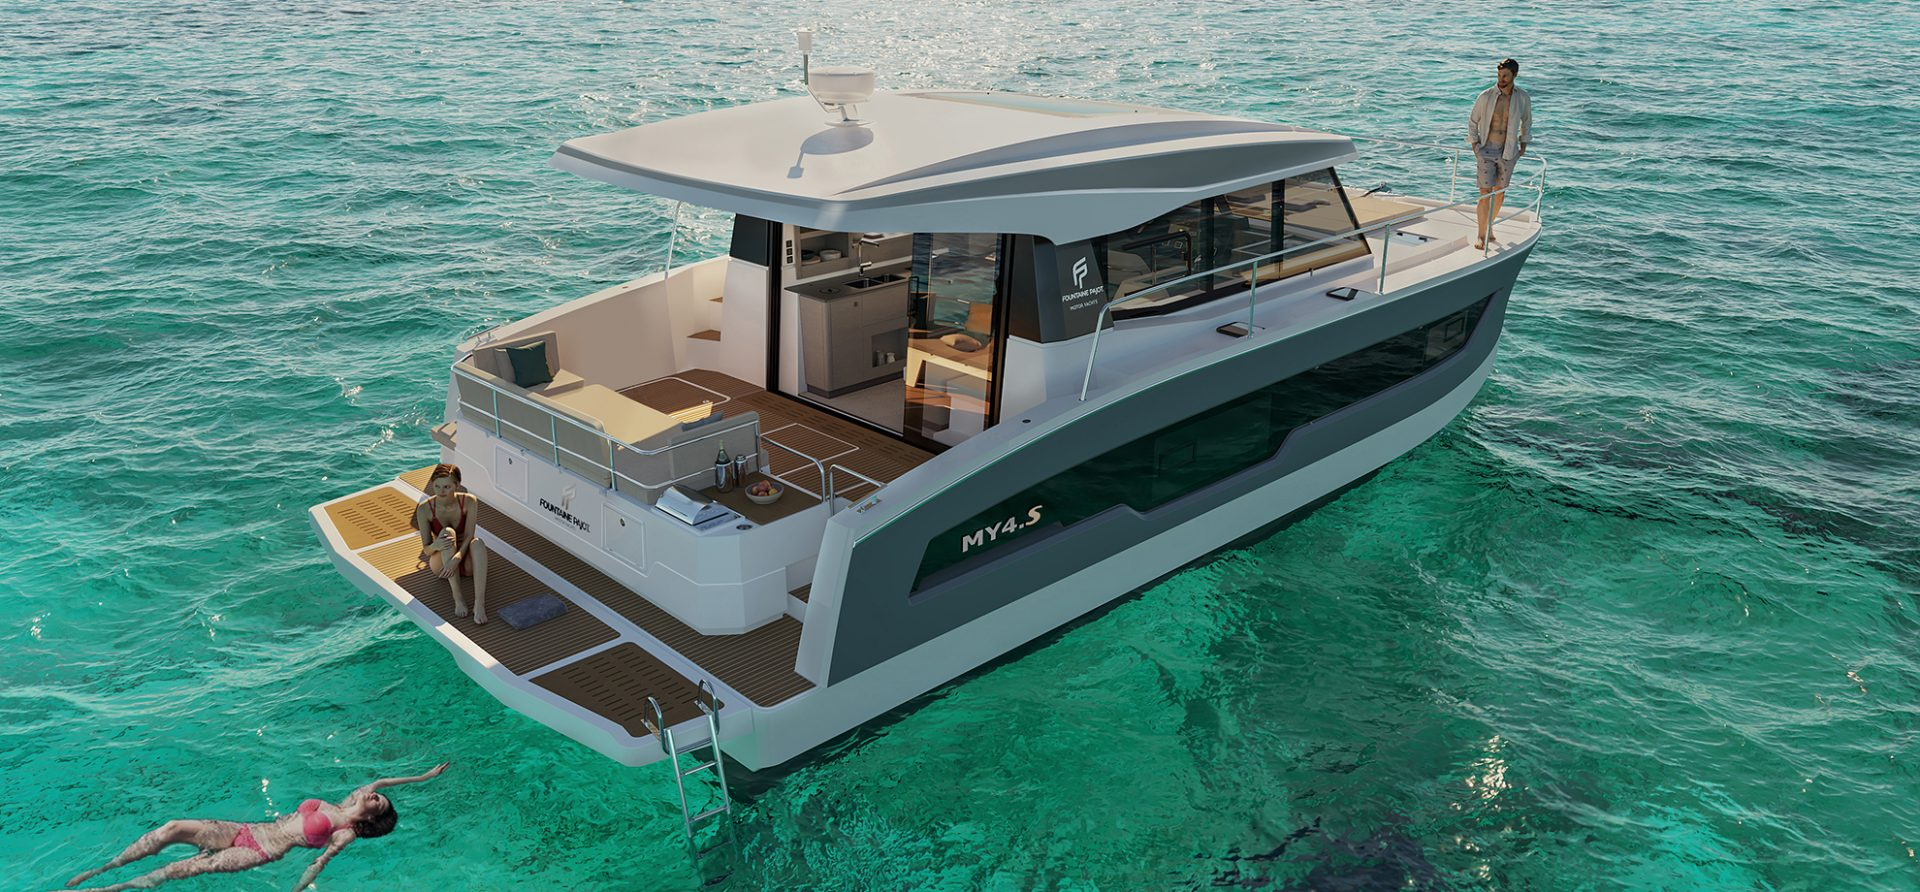 Fountaine Pajot MY4.S aft angle